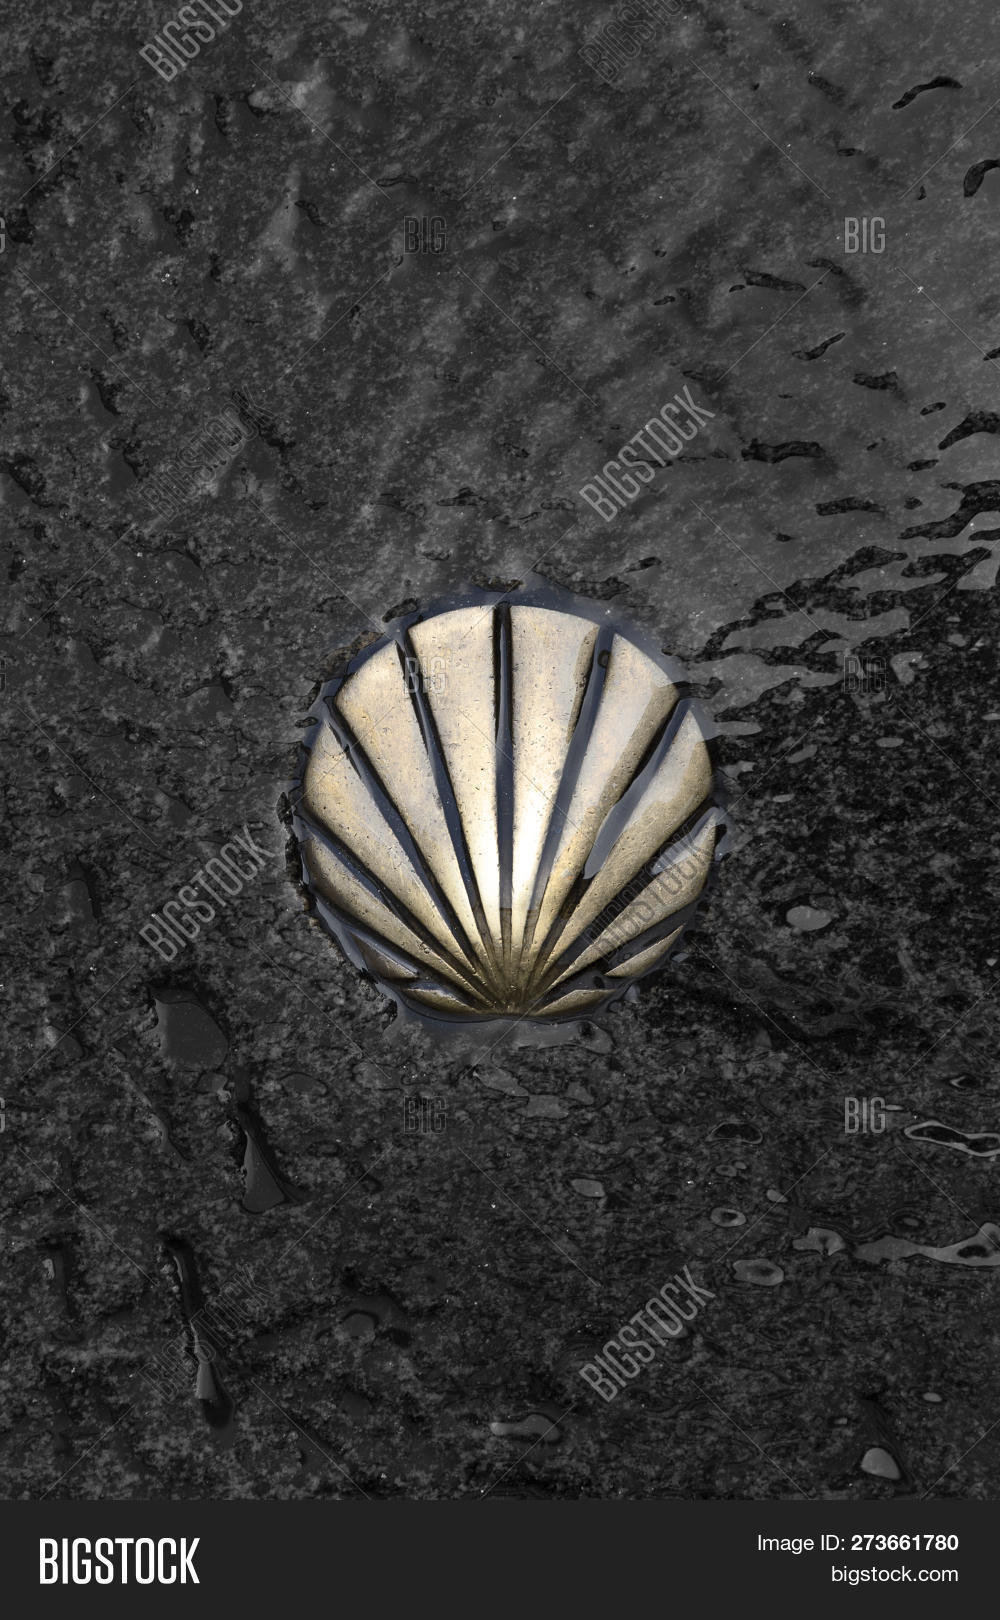 Camino Santiago Shell St James Way Shell Image Photo Free Trial Bigstock